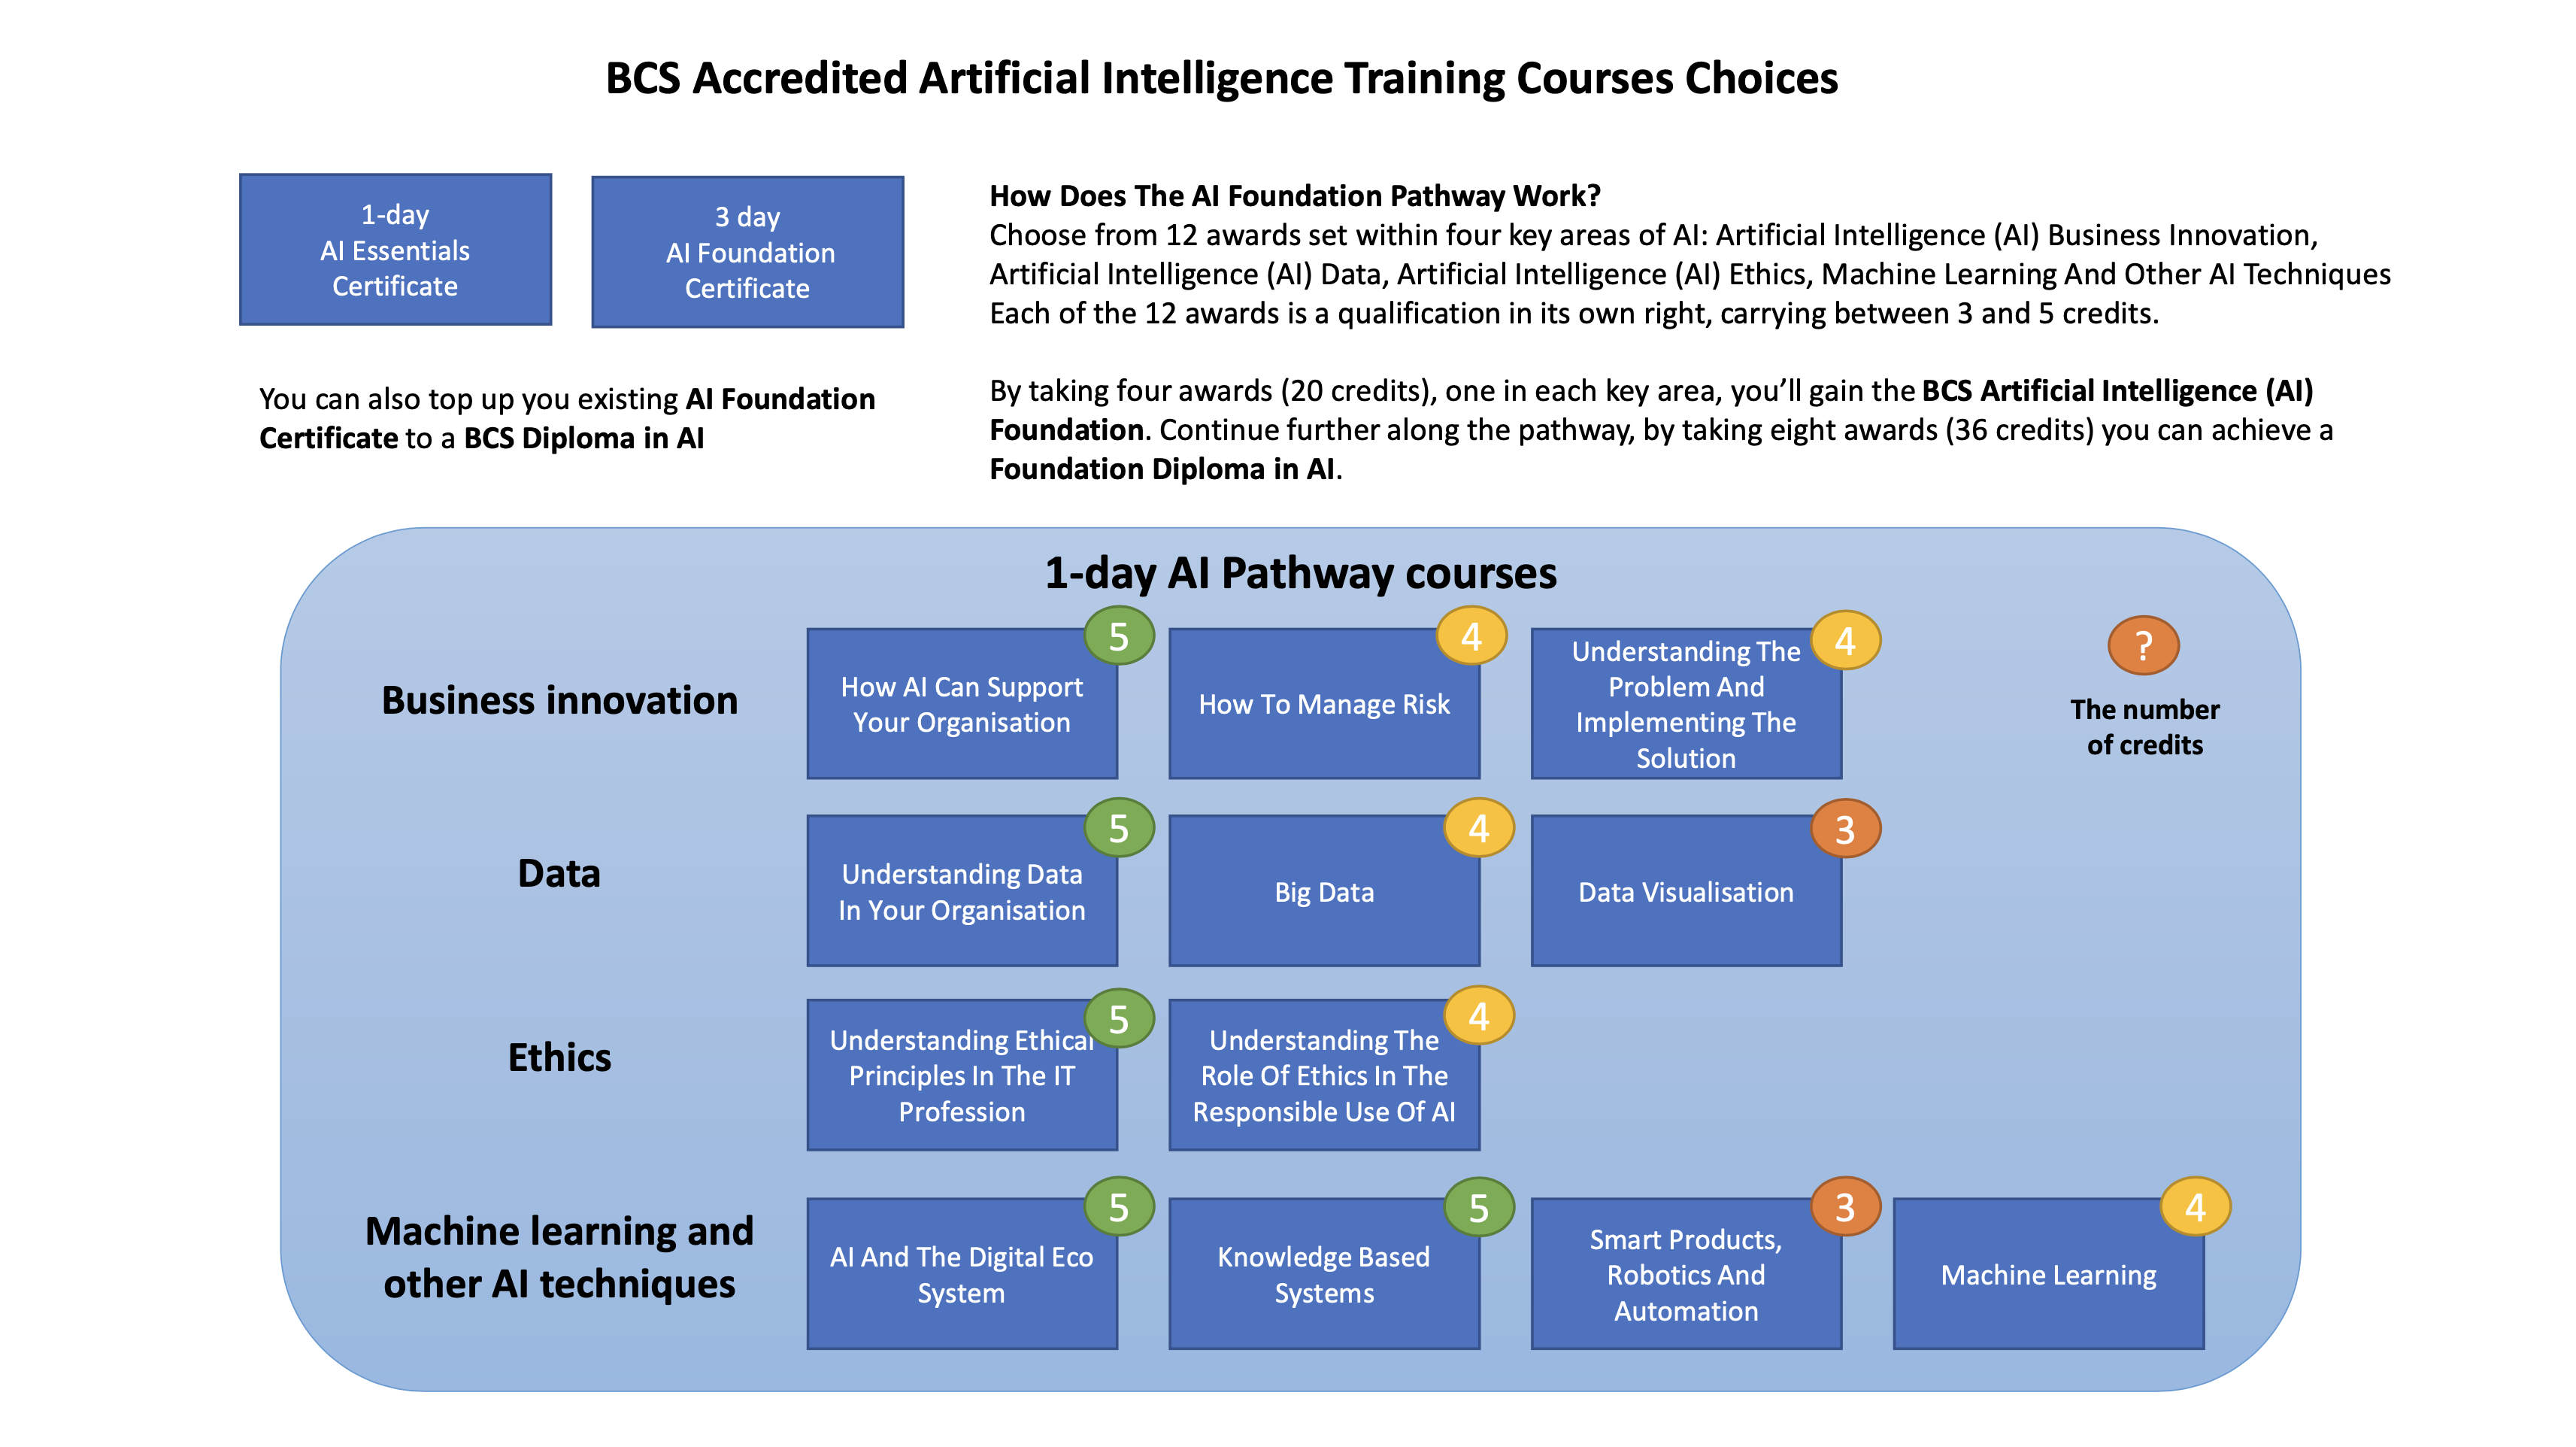 Artificial Intelligence (AI) Foundation Pathway